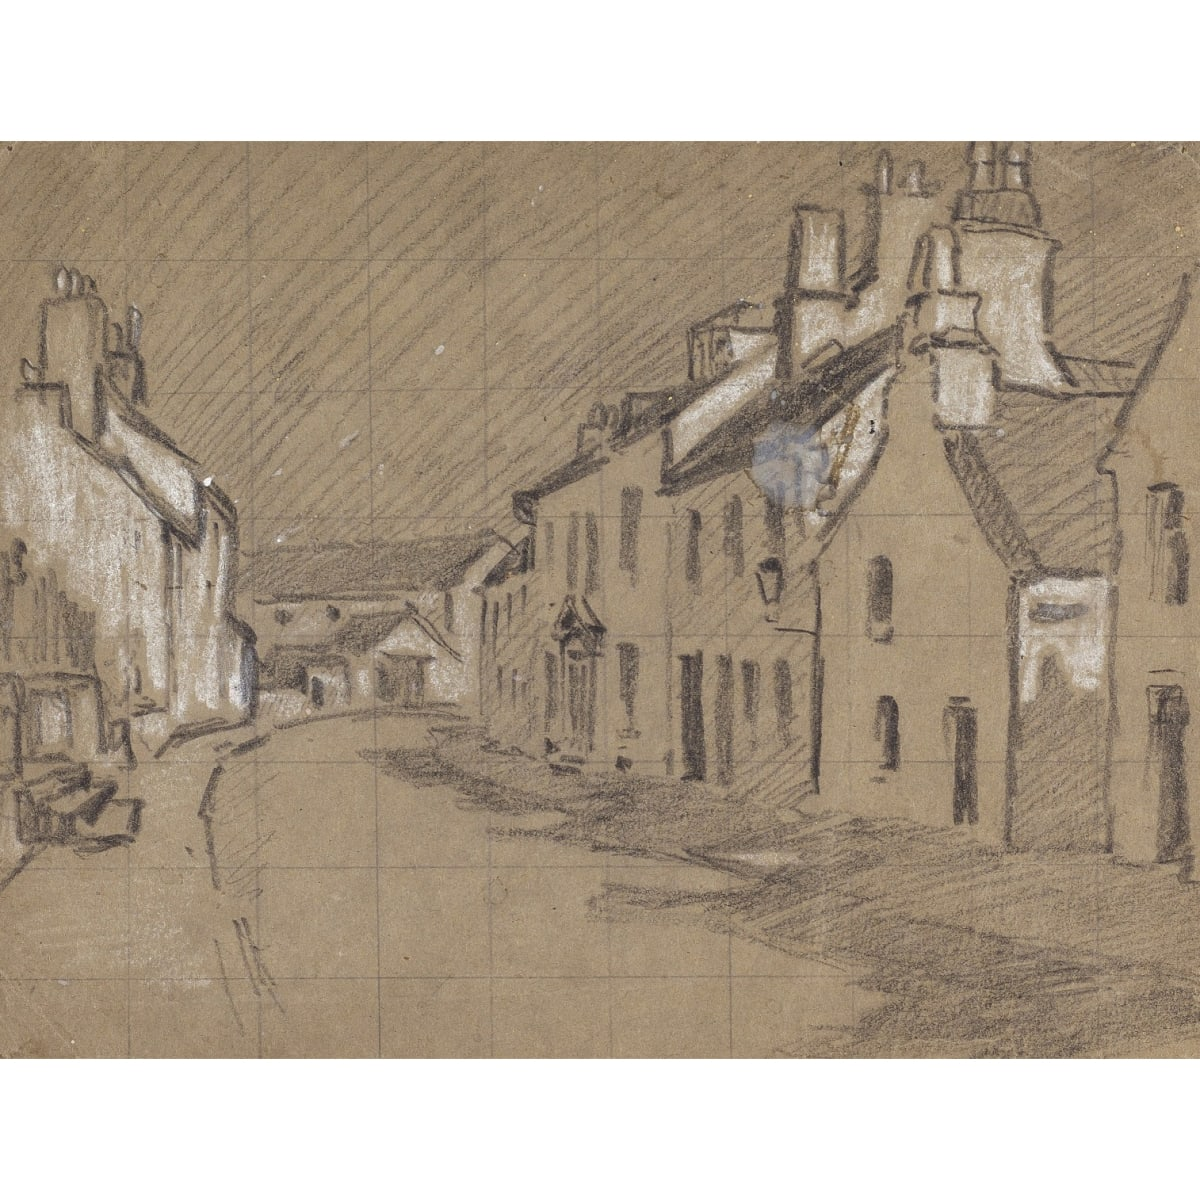 Charles Oppenheimer High Street, Kirkcudbright pastel and pencil 6 1/4 x 8 1/2 inches